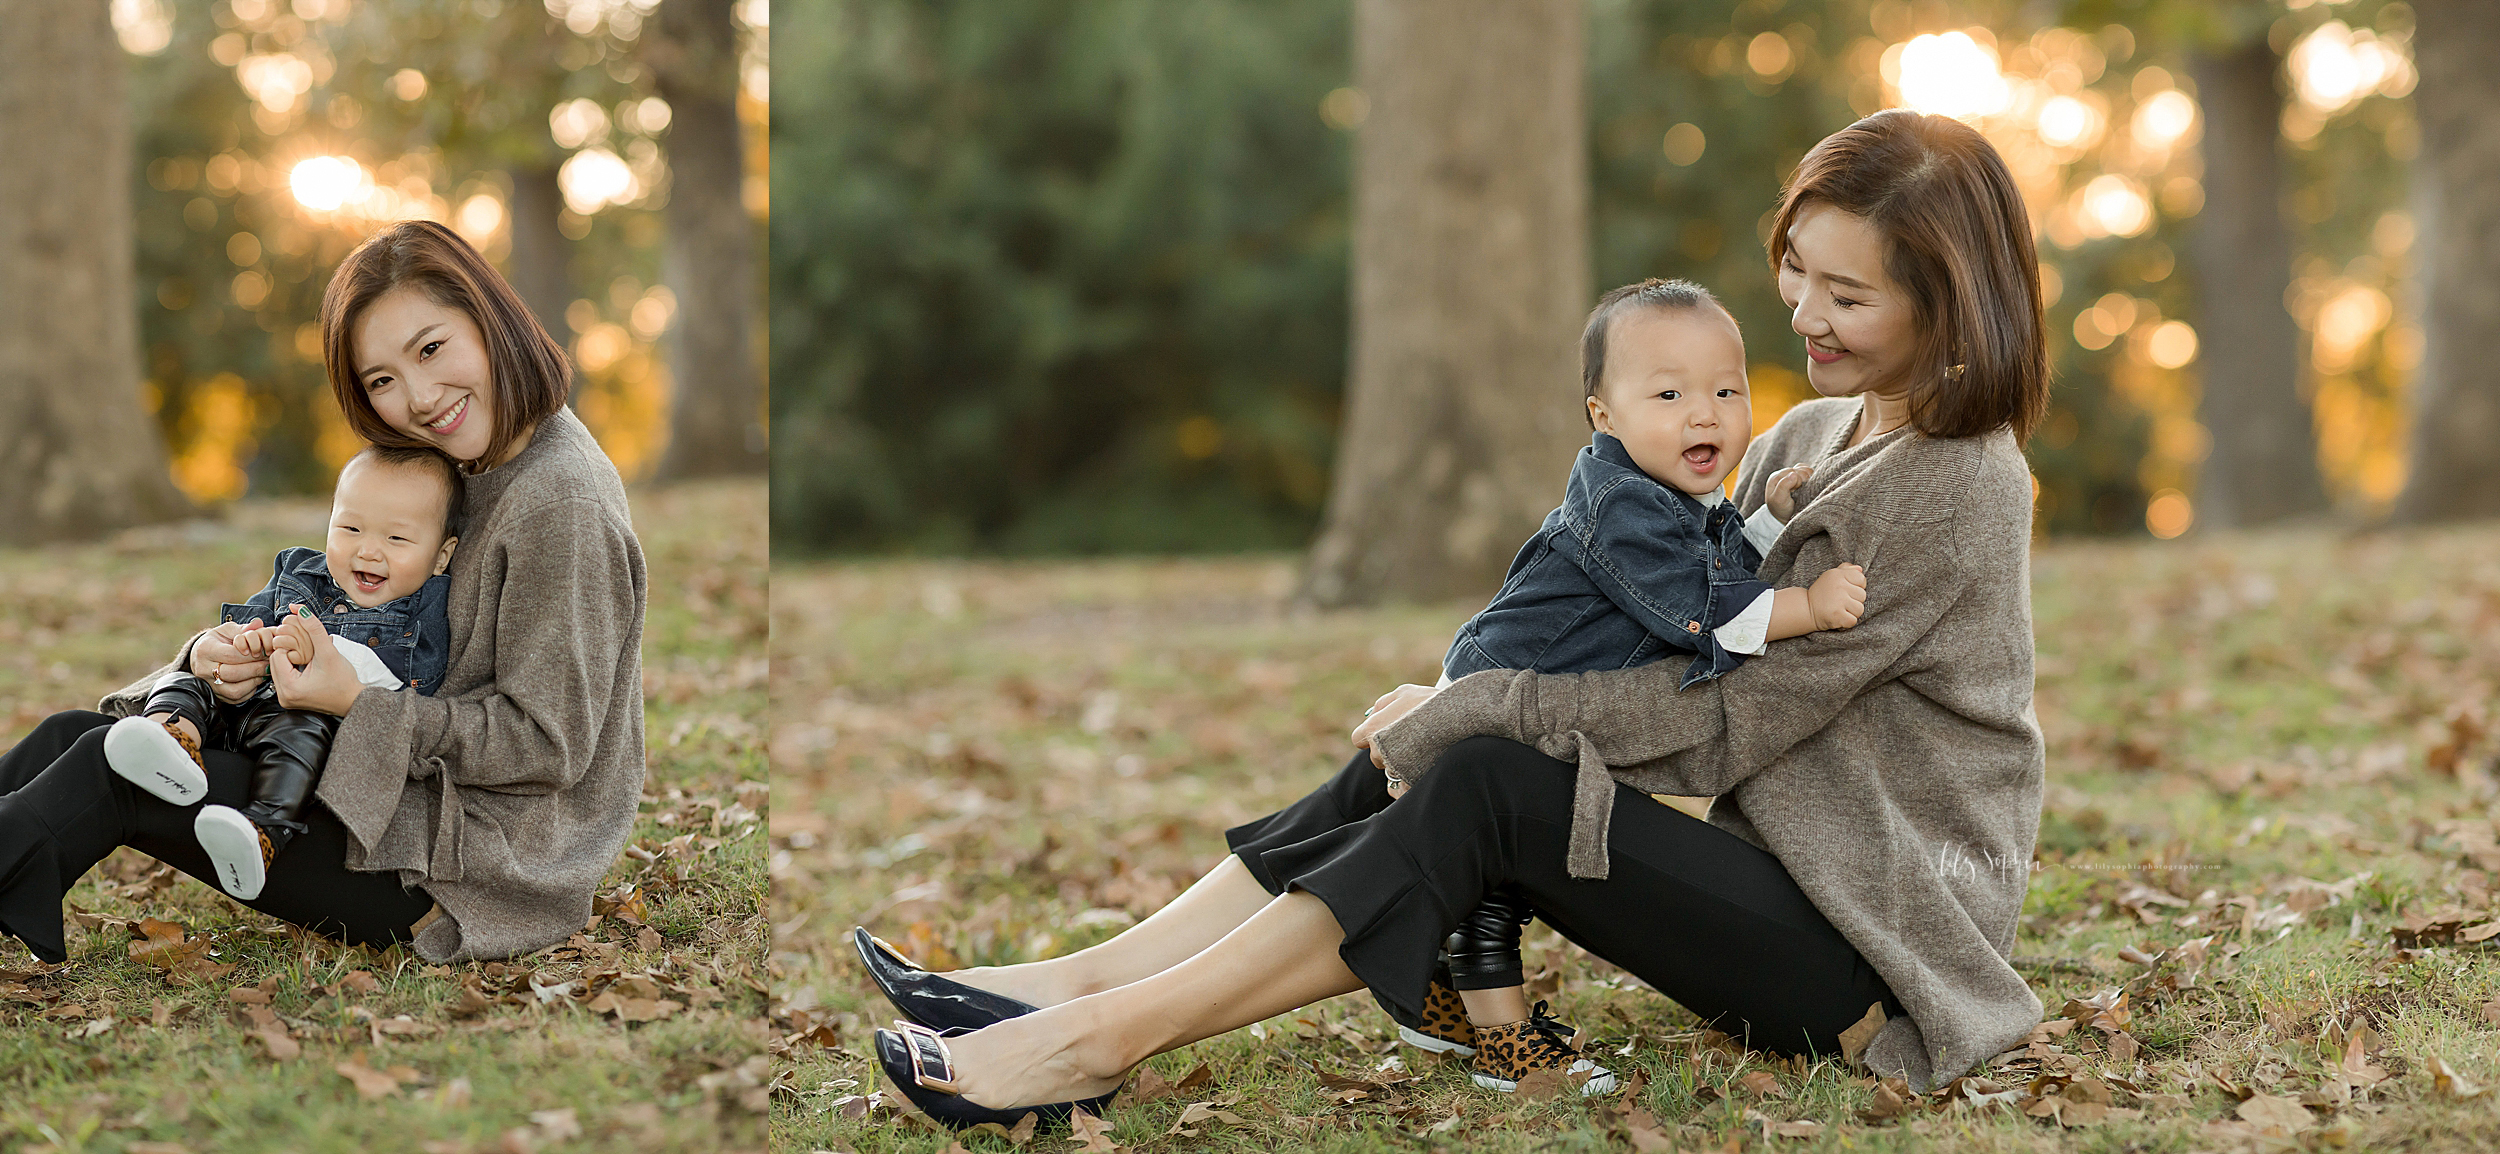 atlanta-buckhead-brookhaven-decatur-lily-sophia-photography--photographer-portraits-grant-park-intown-park-sunset-first-birthday-cake-smash-one-year-old-outdoors-cool-asian-american-family_0088.jpg